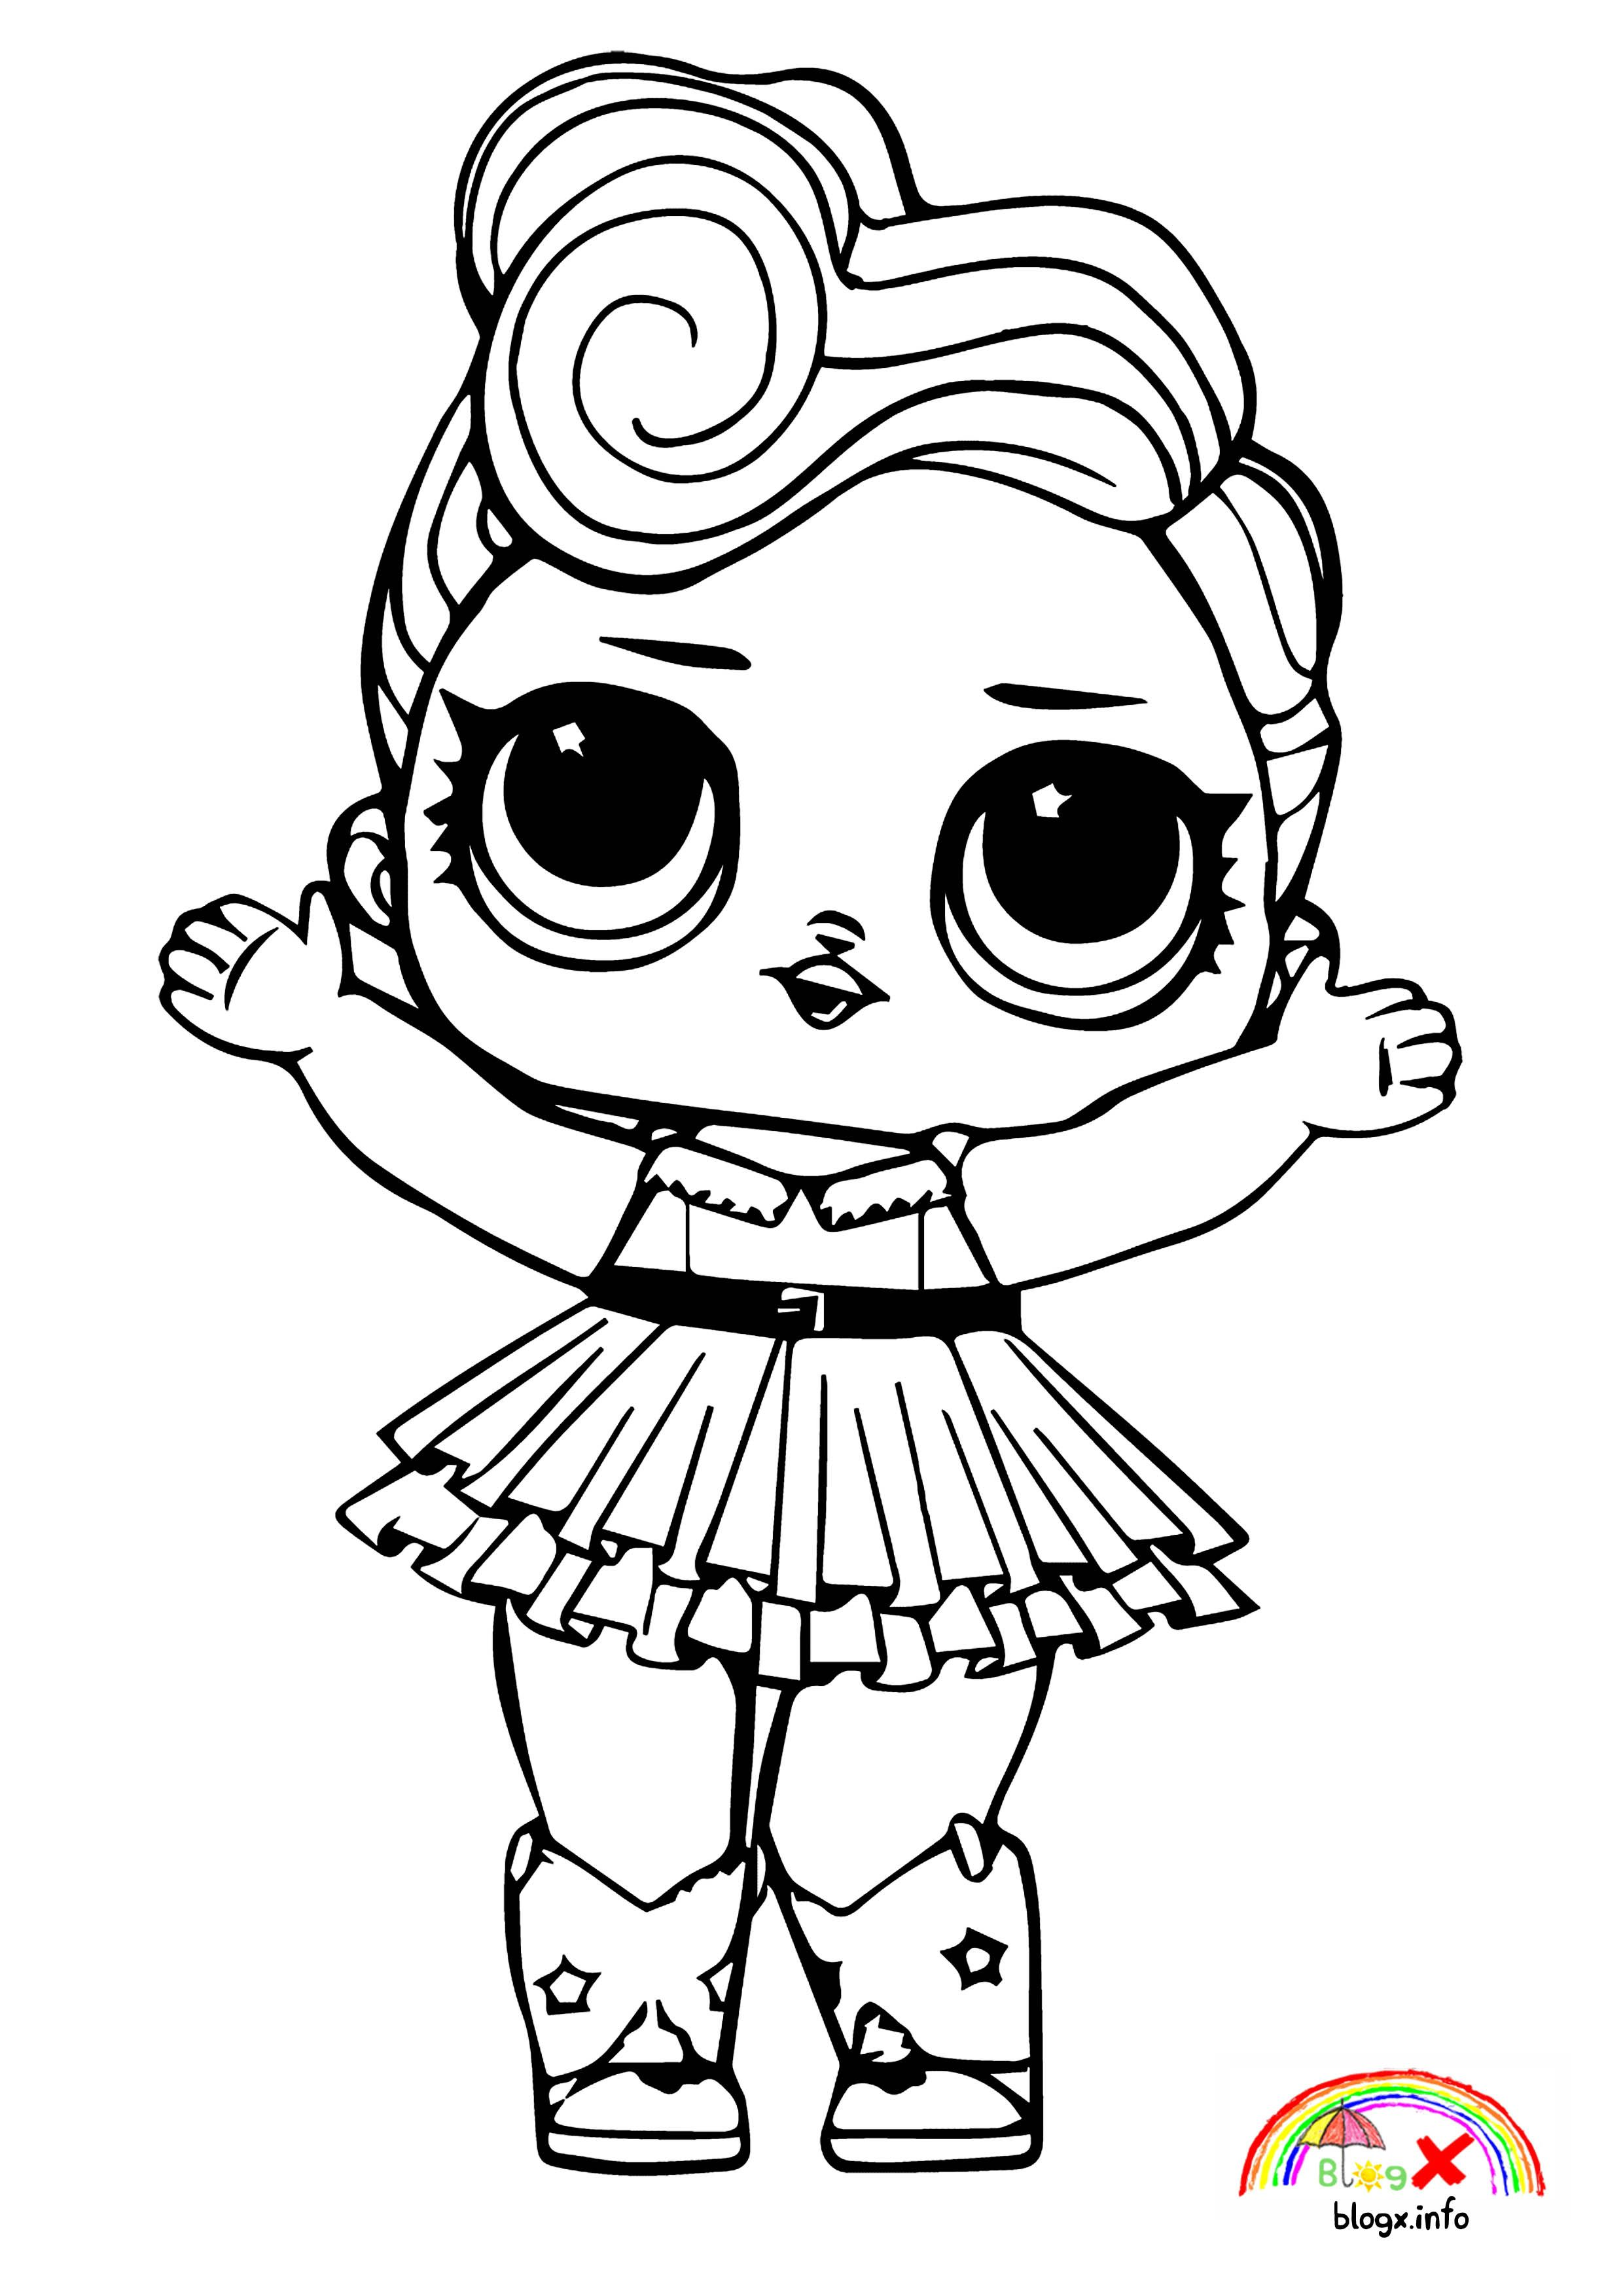 Bad Girl Lol Dolls Coloring Pages